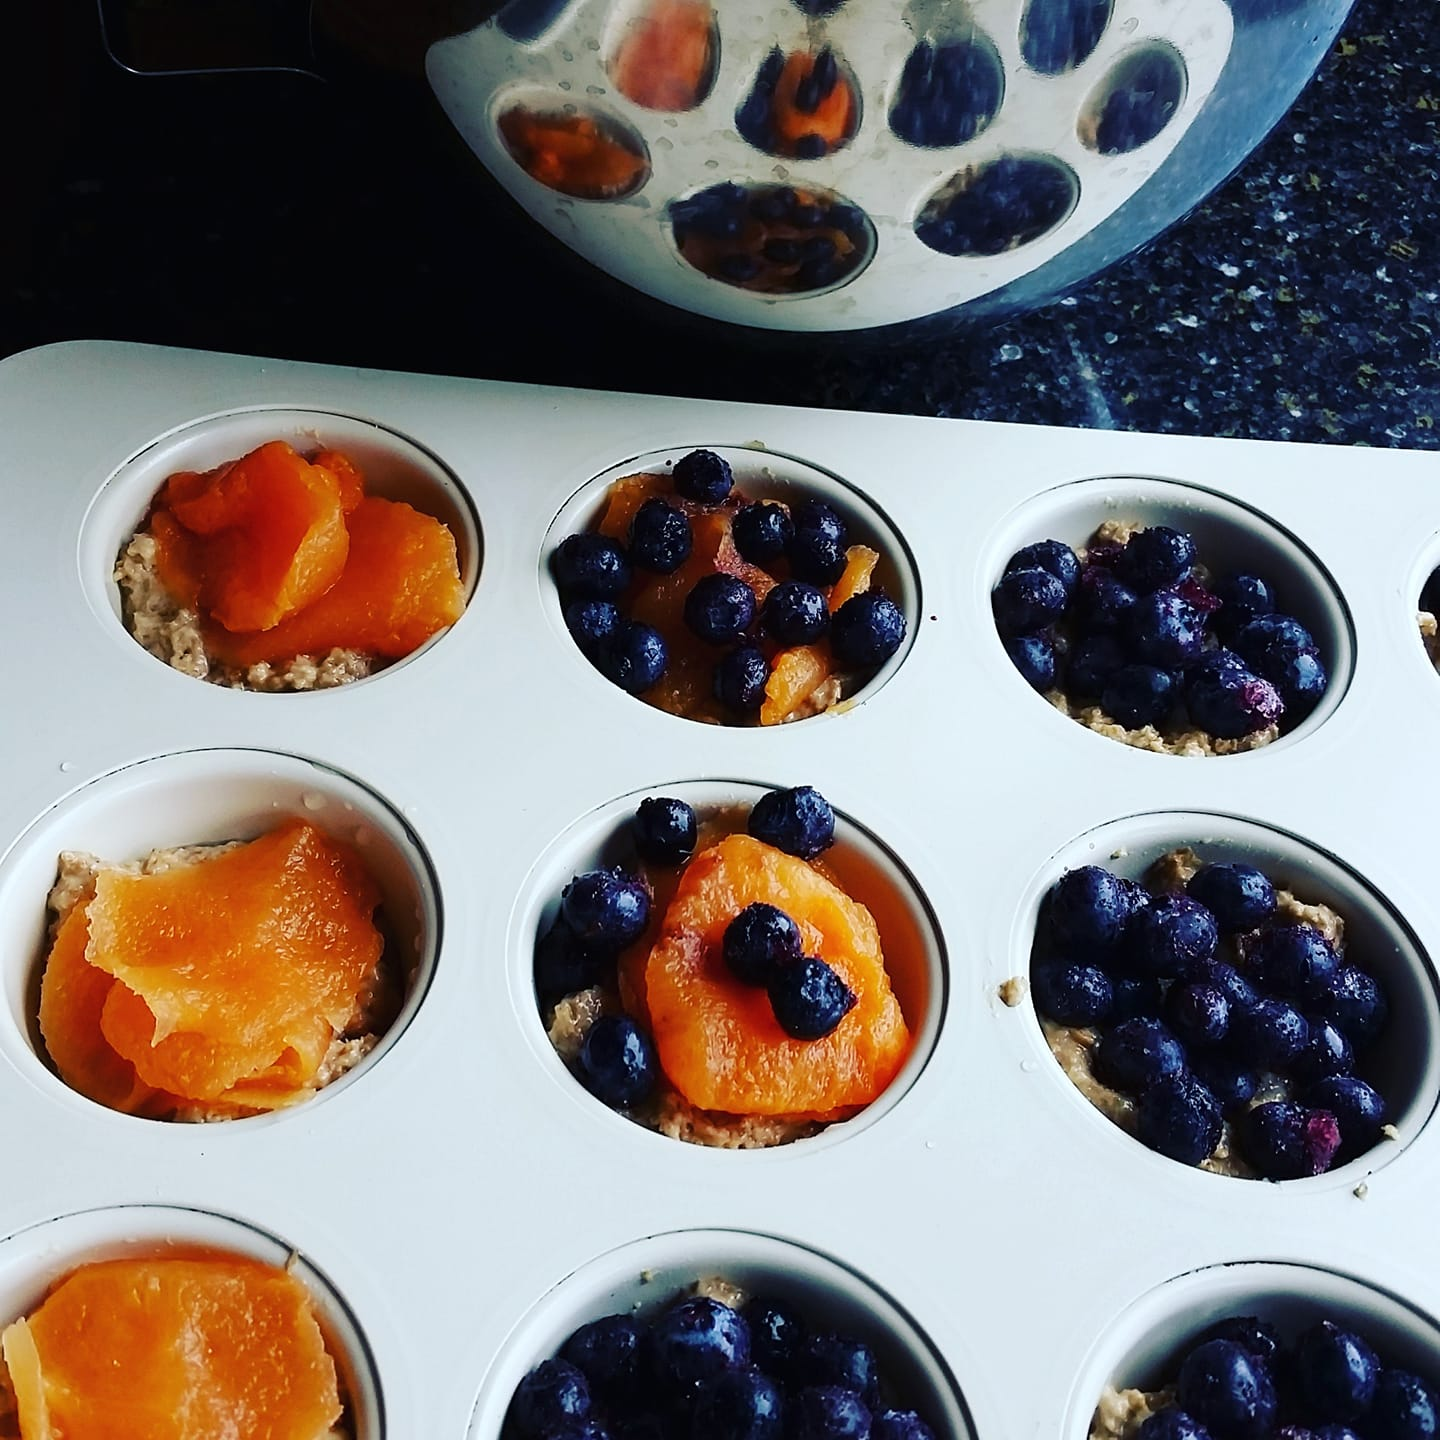 SK's bran muffins - here with blueberries and cantaloupe